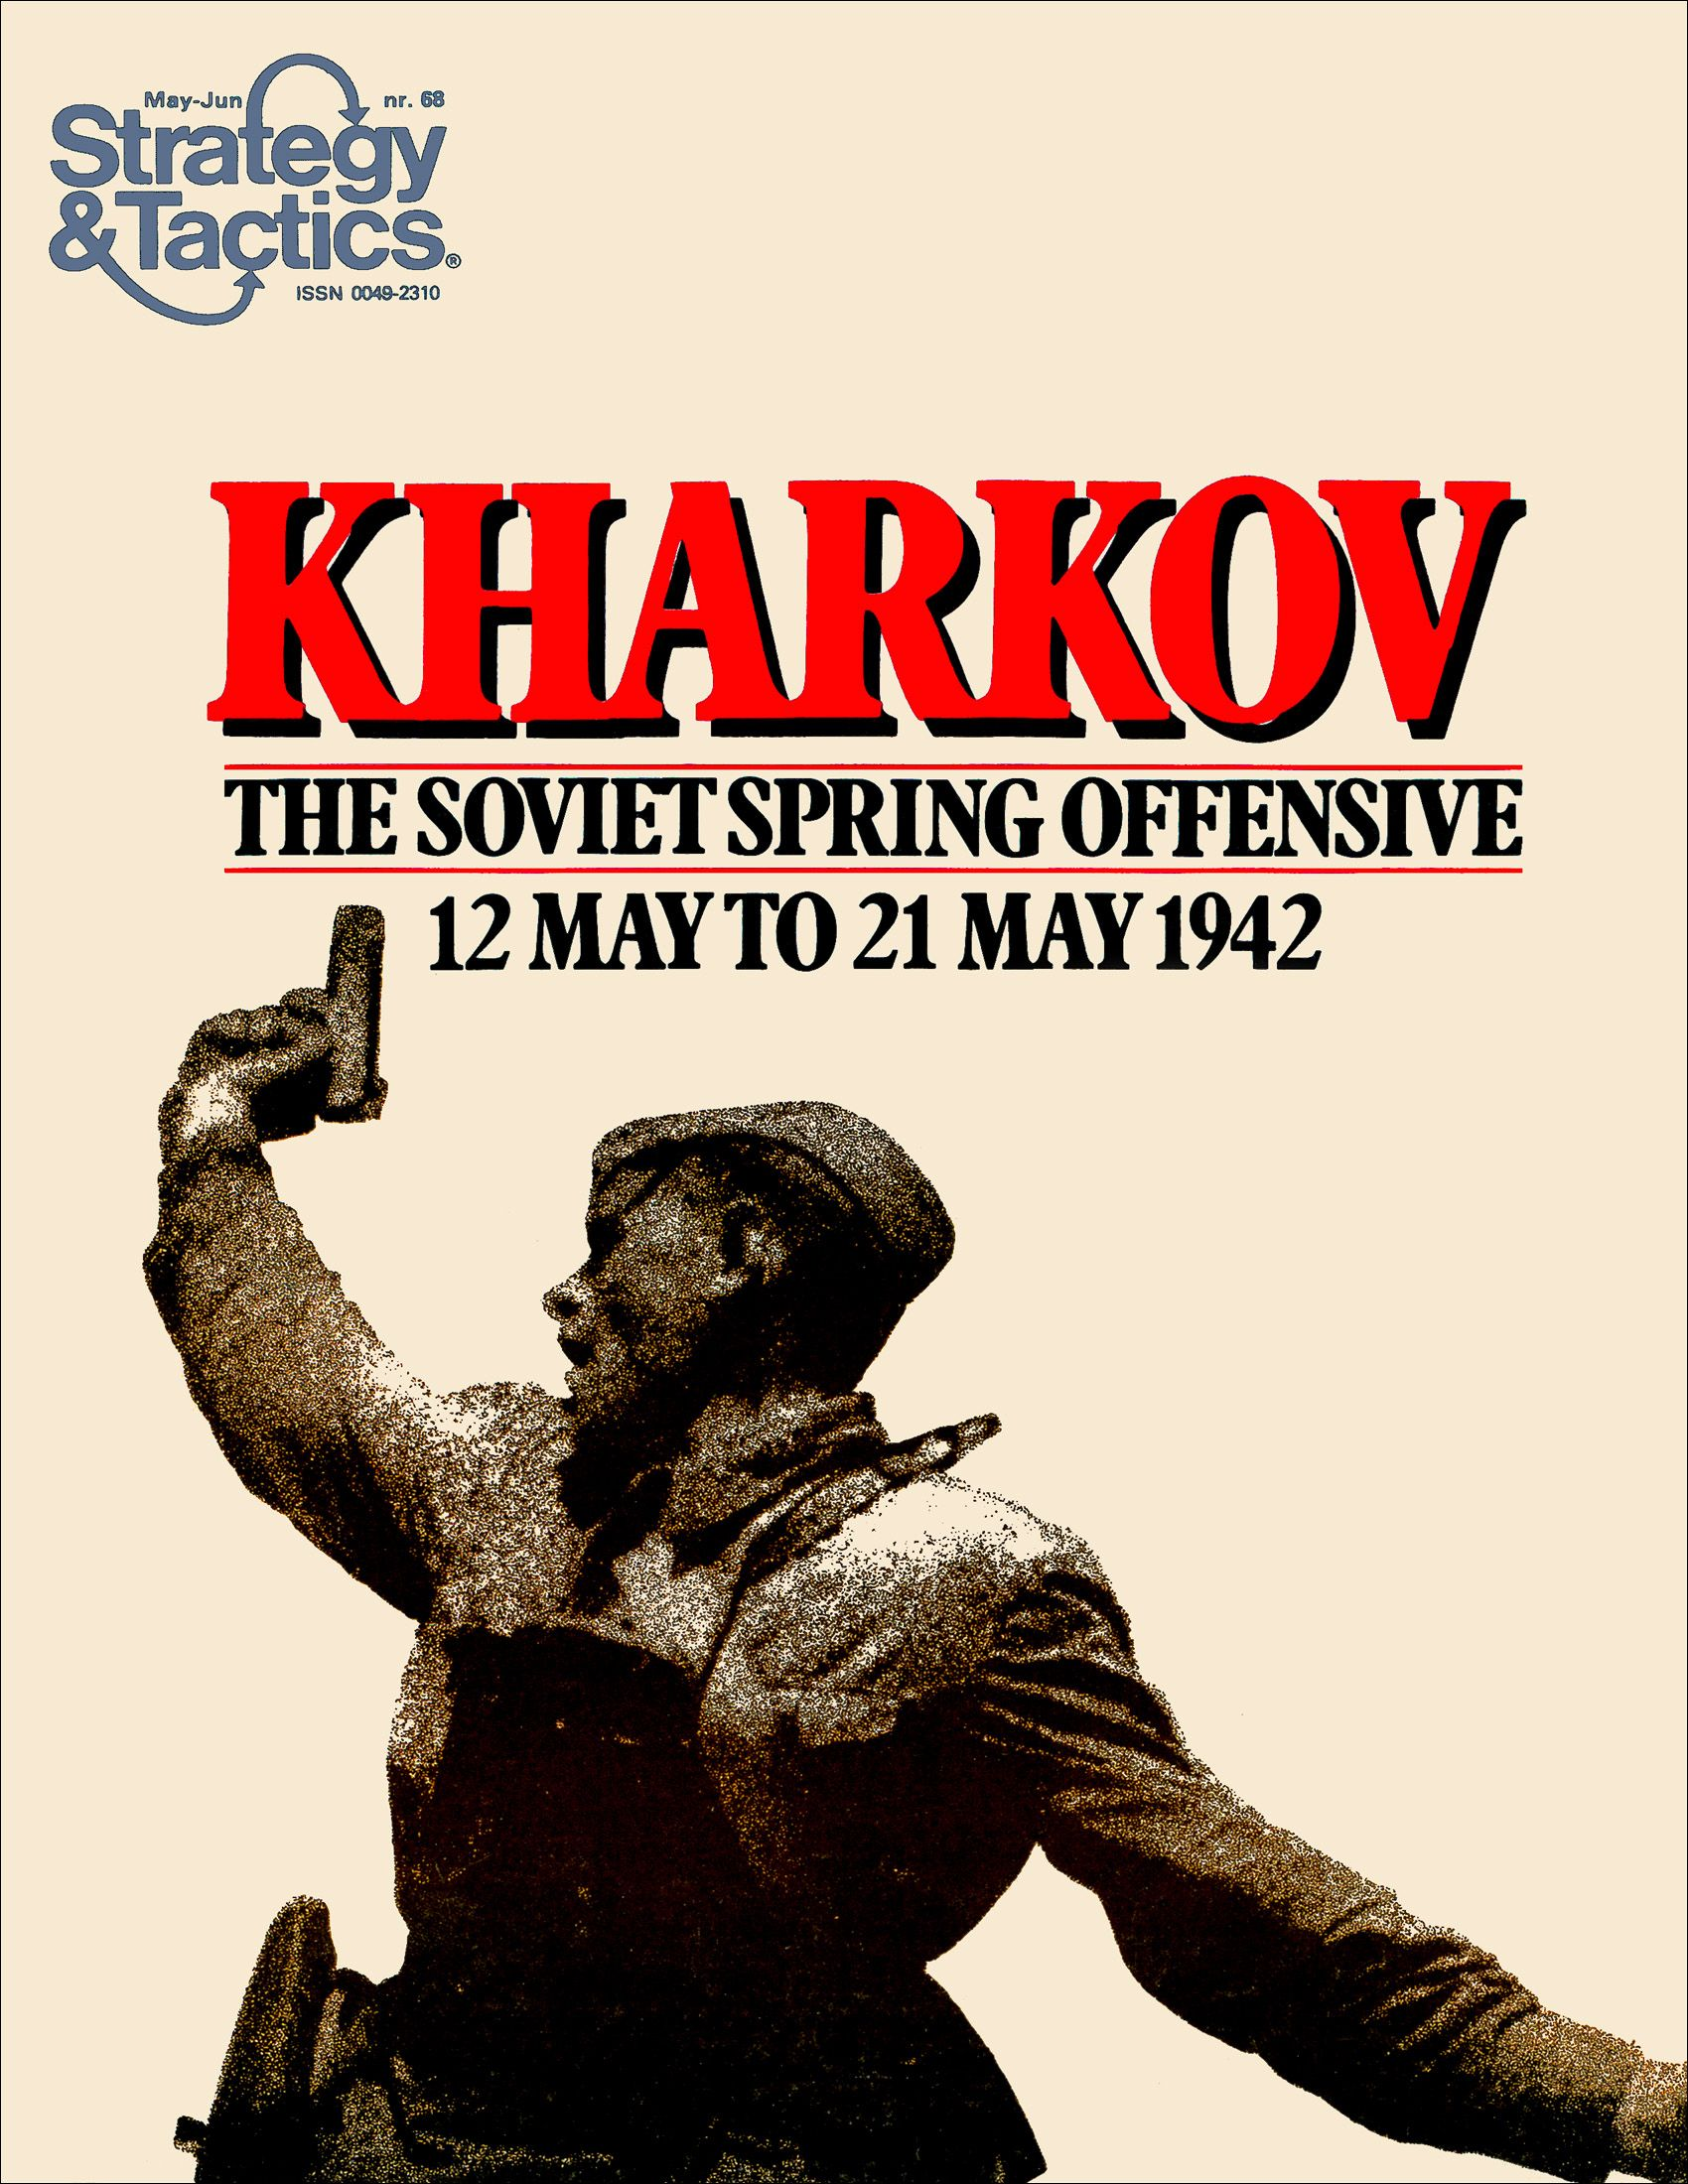 Kharkov: The Soviet Spring Offensive 12 May to 21 May 1942